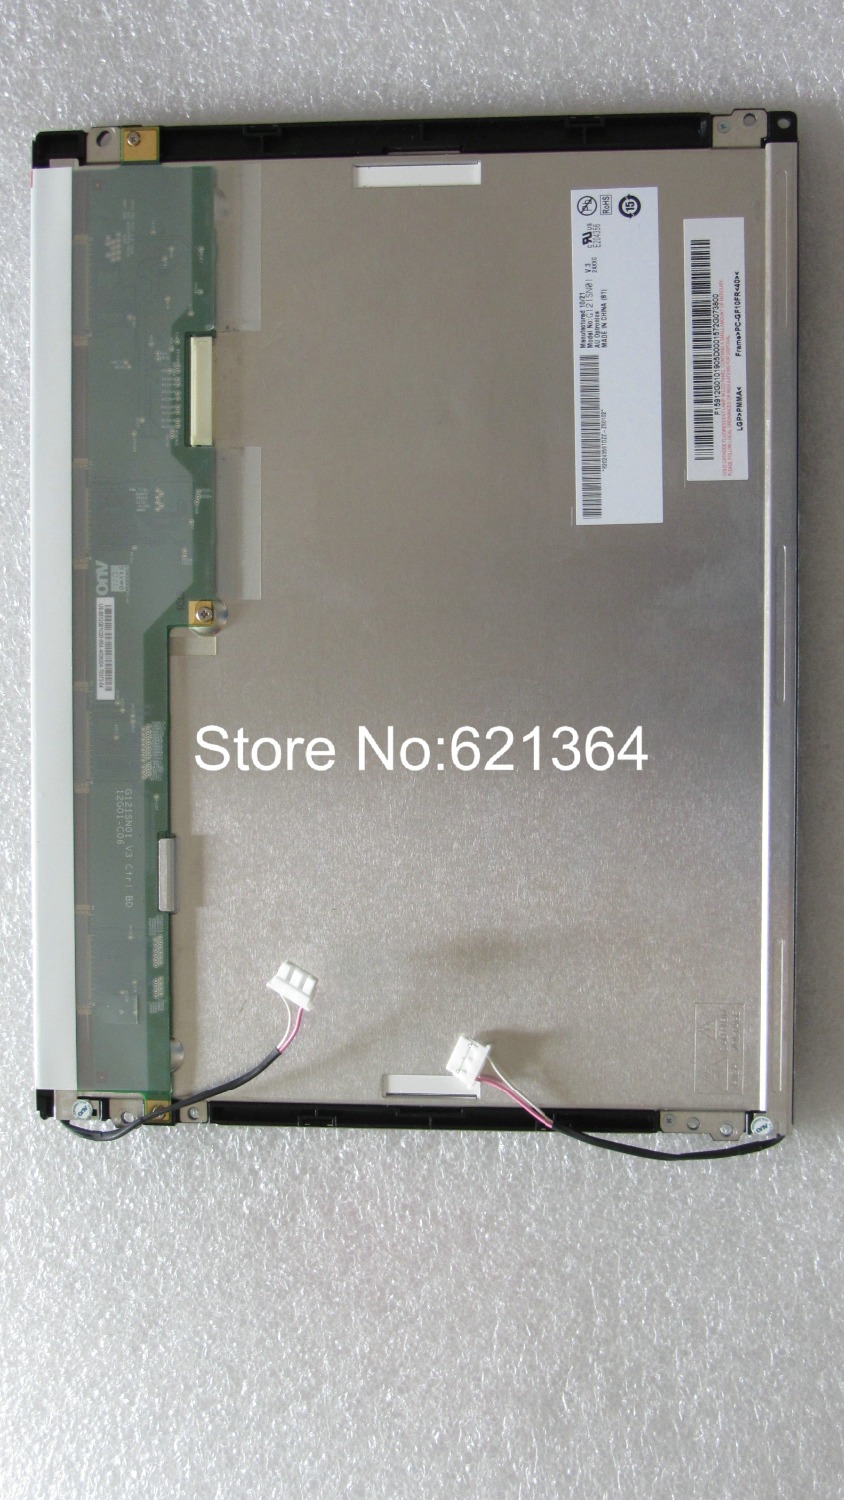 best price and quality  G121SN01  V3   industrial LCD Displaybest price and quality  G121SN01  V3   industrial LCD Display